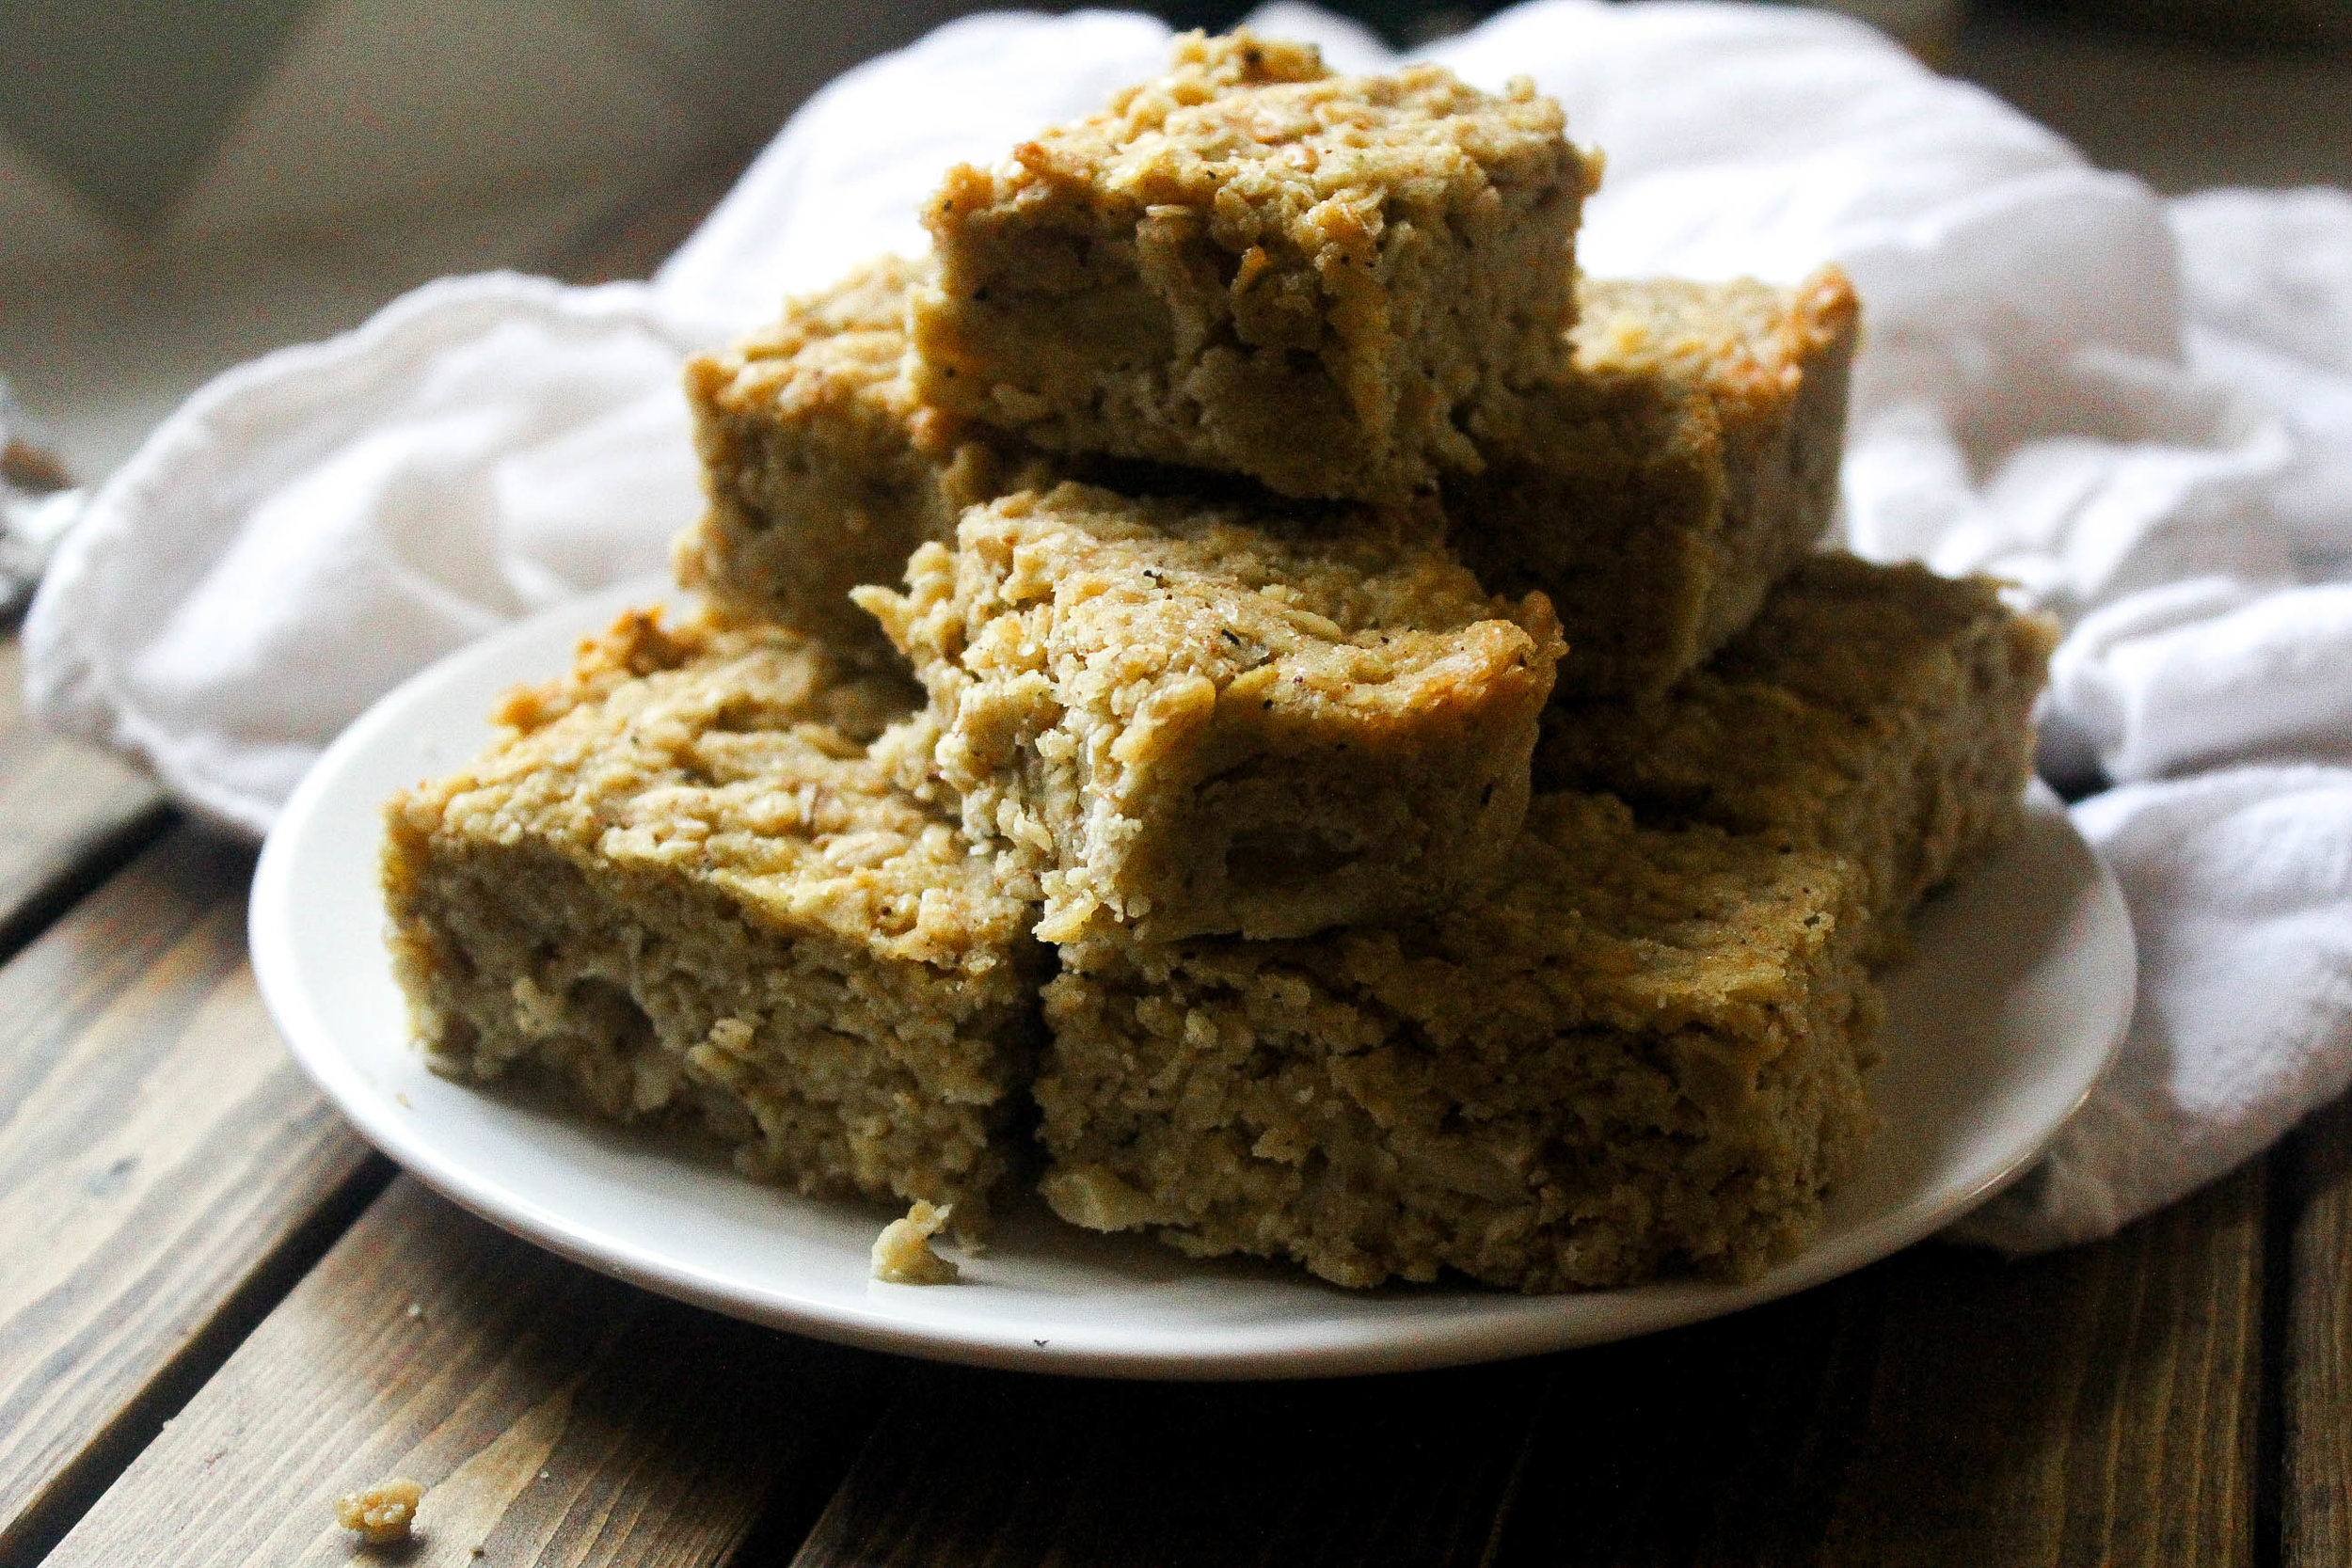 Gluten Free Spiced Apple and Oat Bars